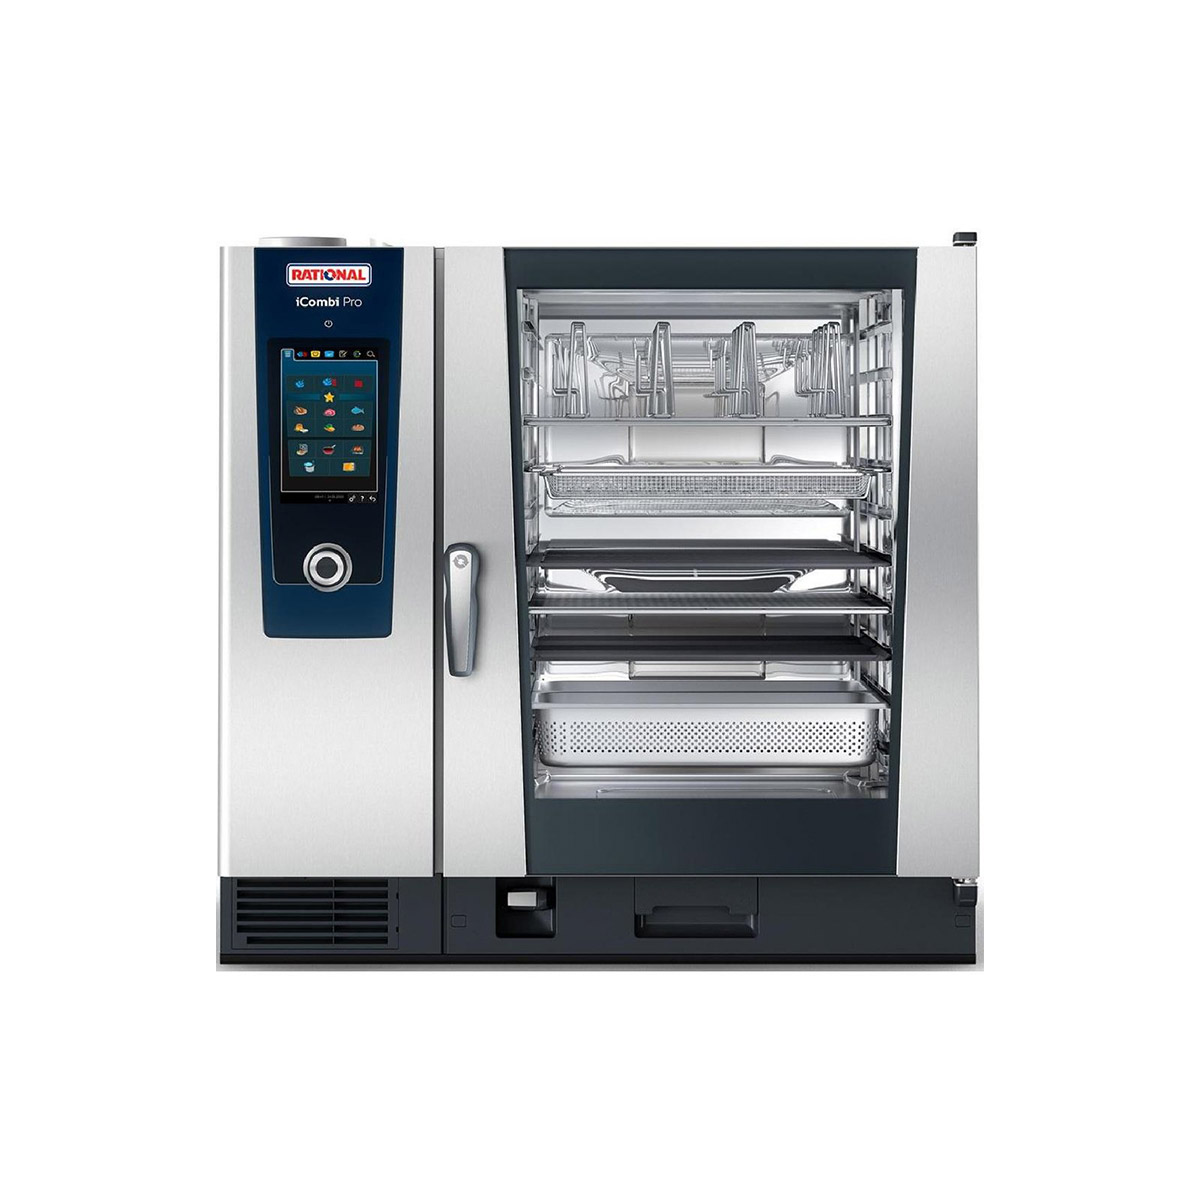 Rational iCombi Pro 10-2/1/E 10 Grid 2/1GN Electric Combination Oven